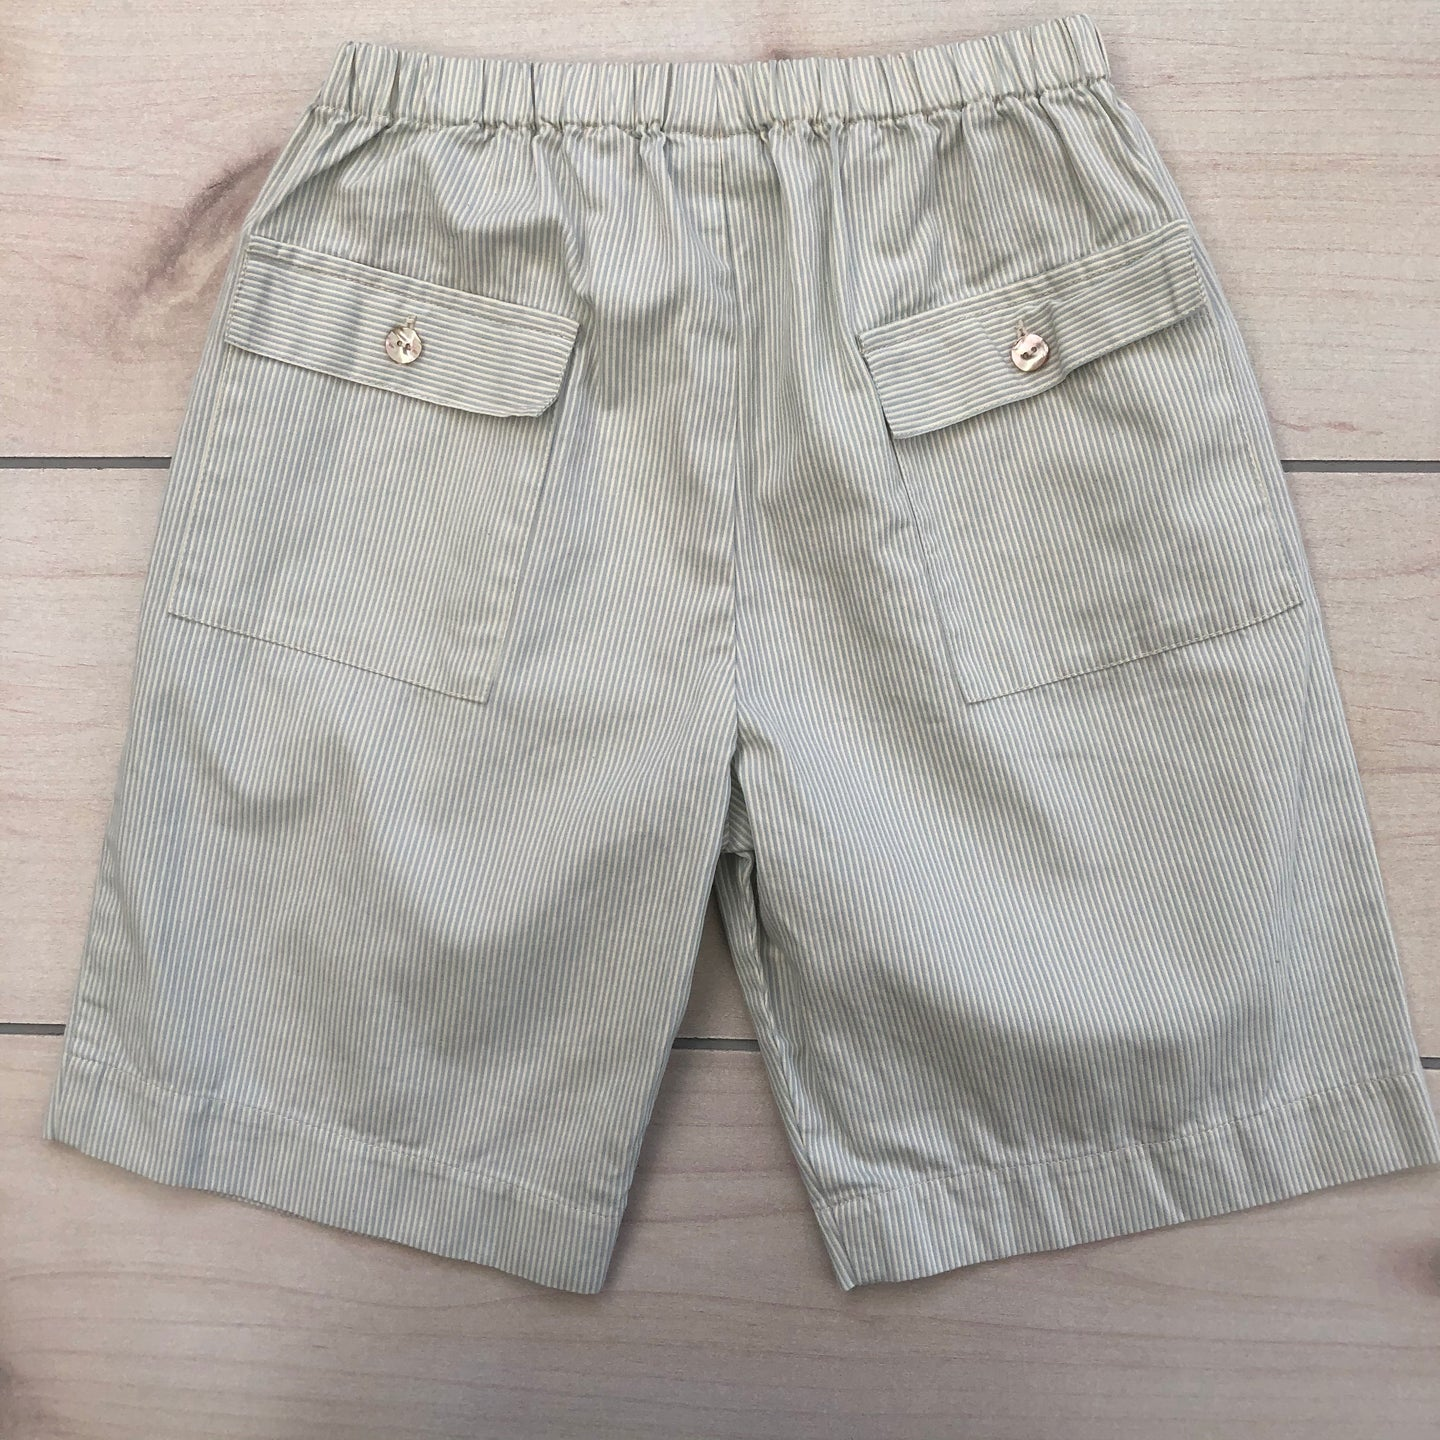 Papo D'anjo Green Striped Shorts Size 10